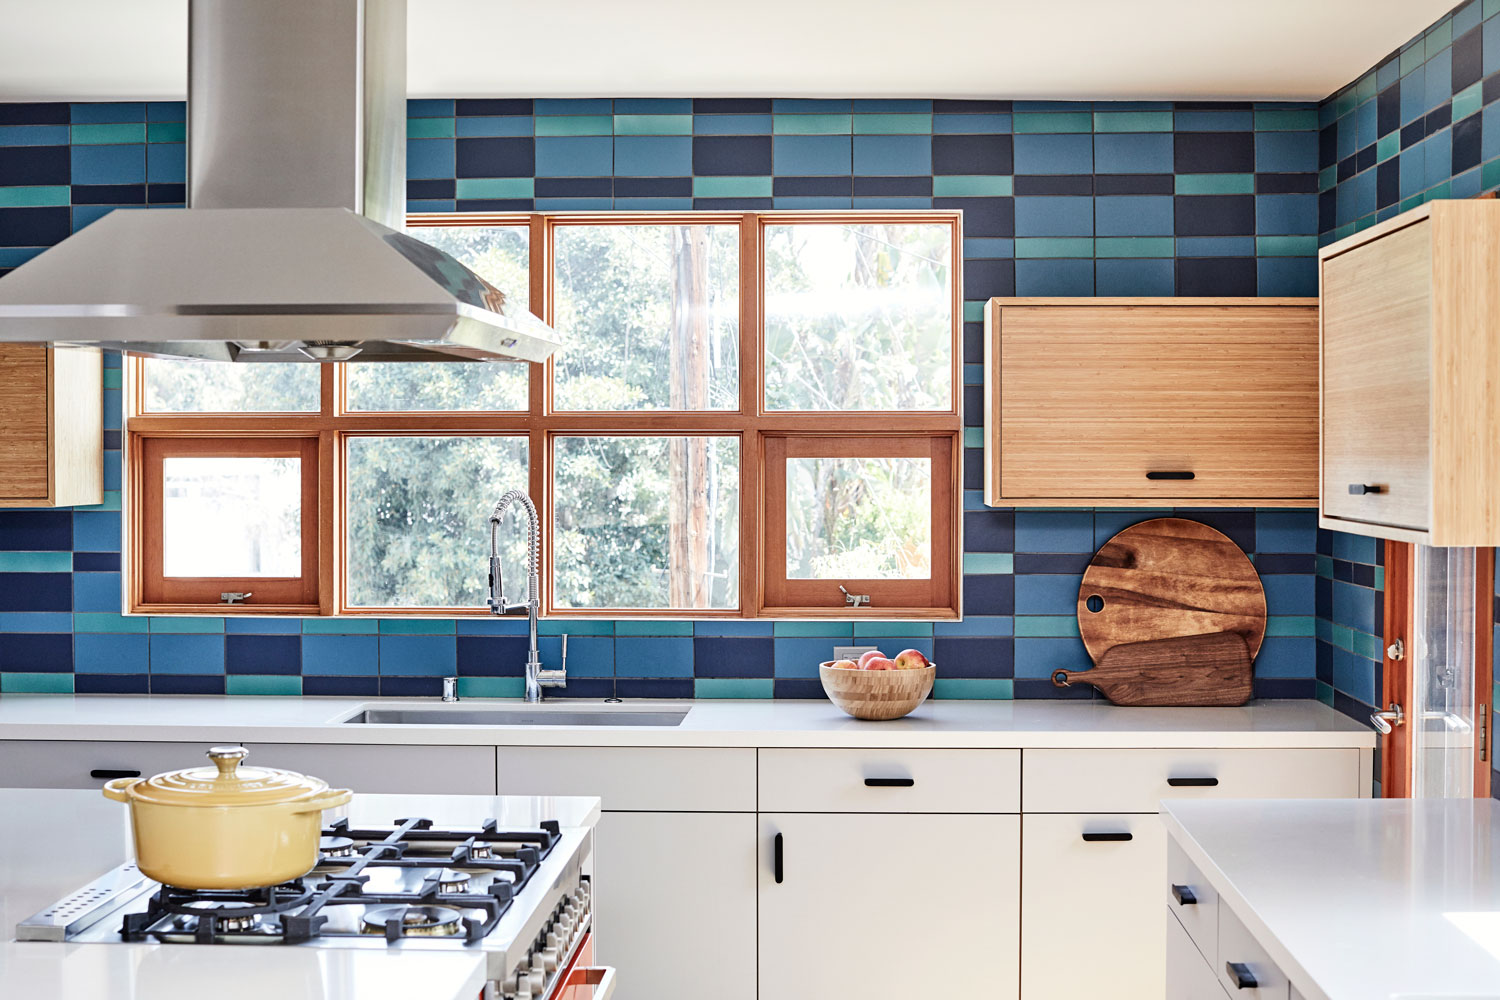 A custom-blend of Fireclay Tile in a surprising plaid pattern made the mid-century modern statement our clients' wanted.